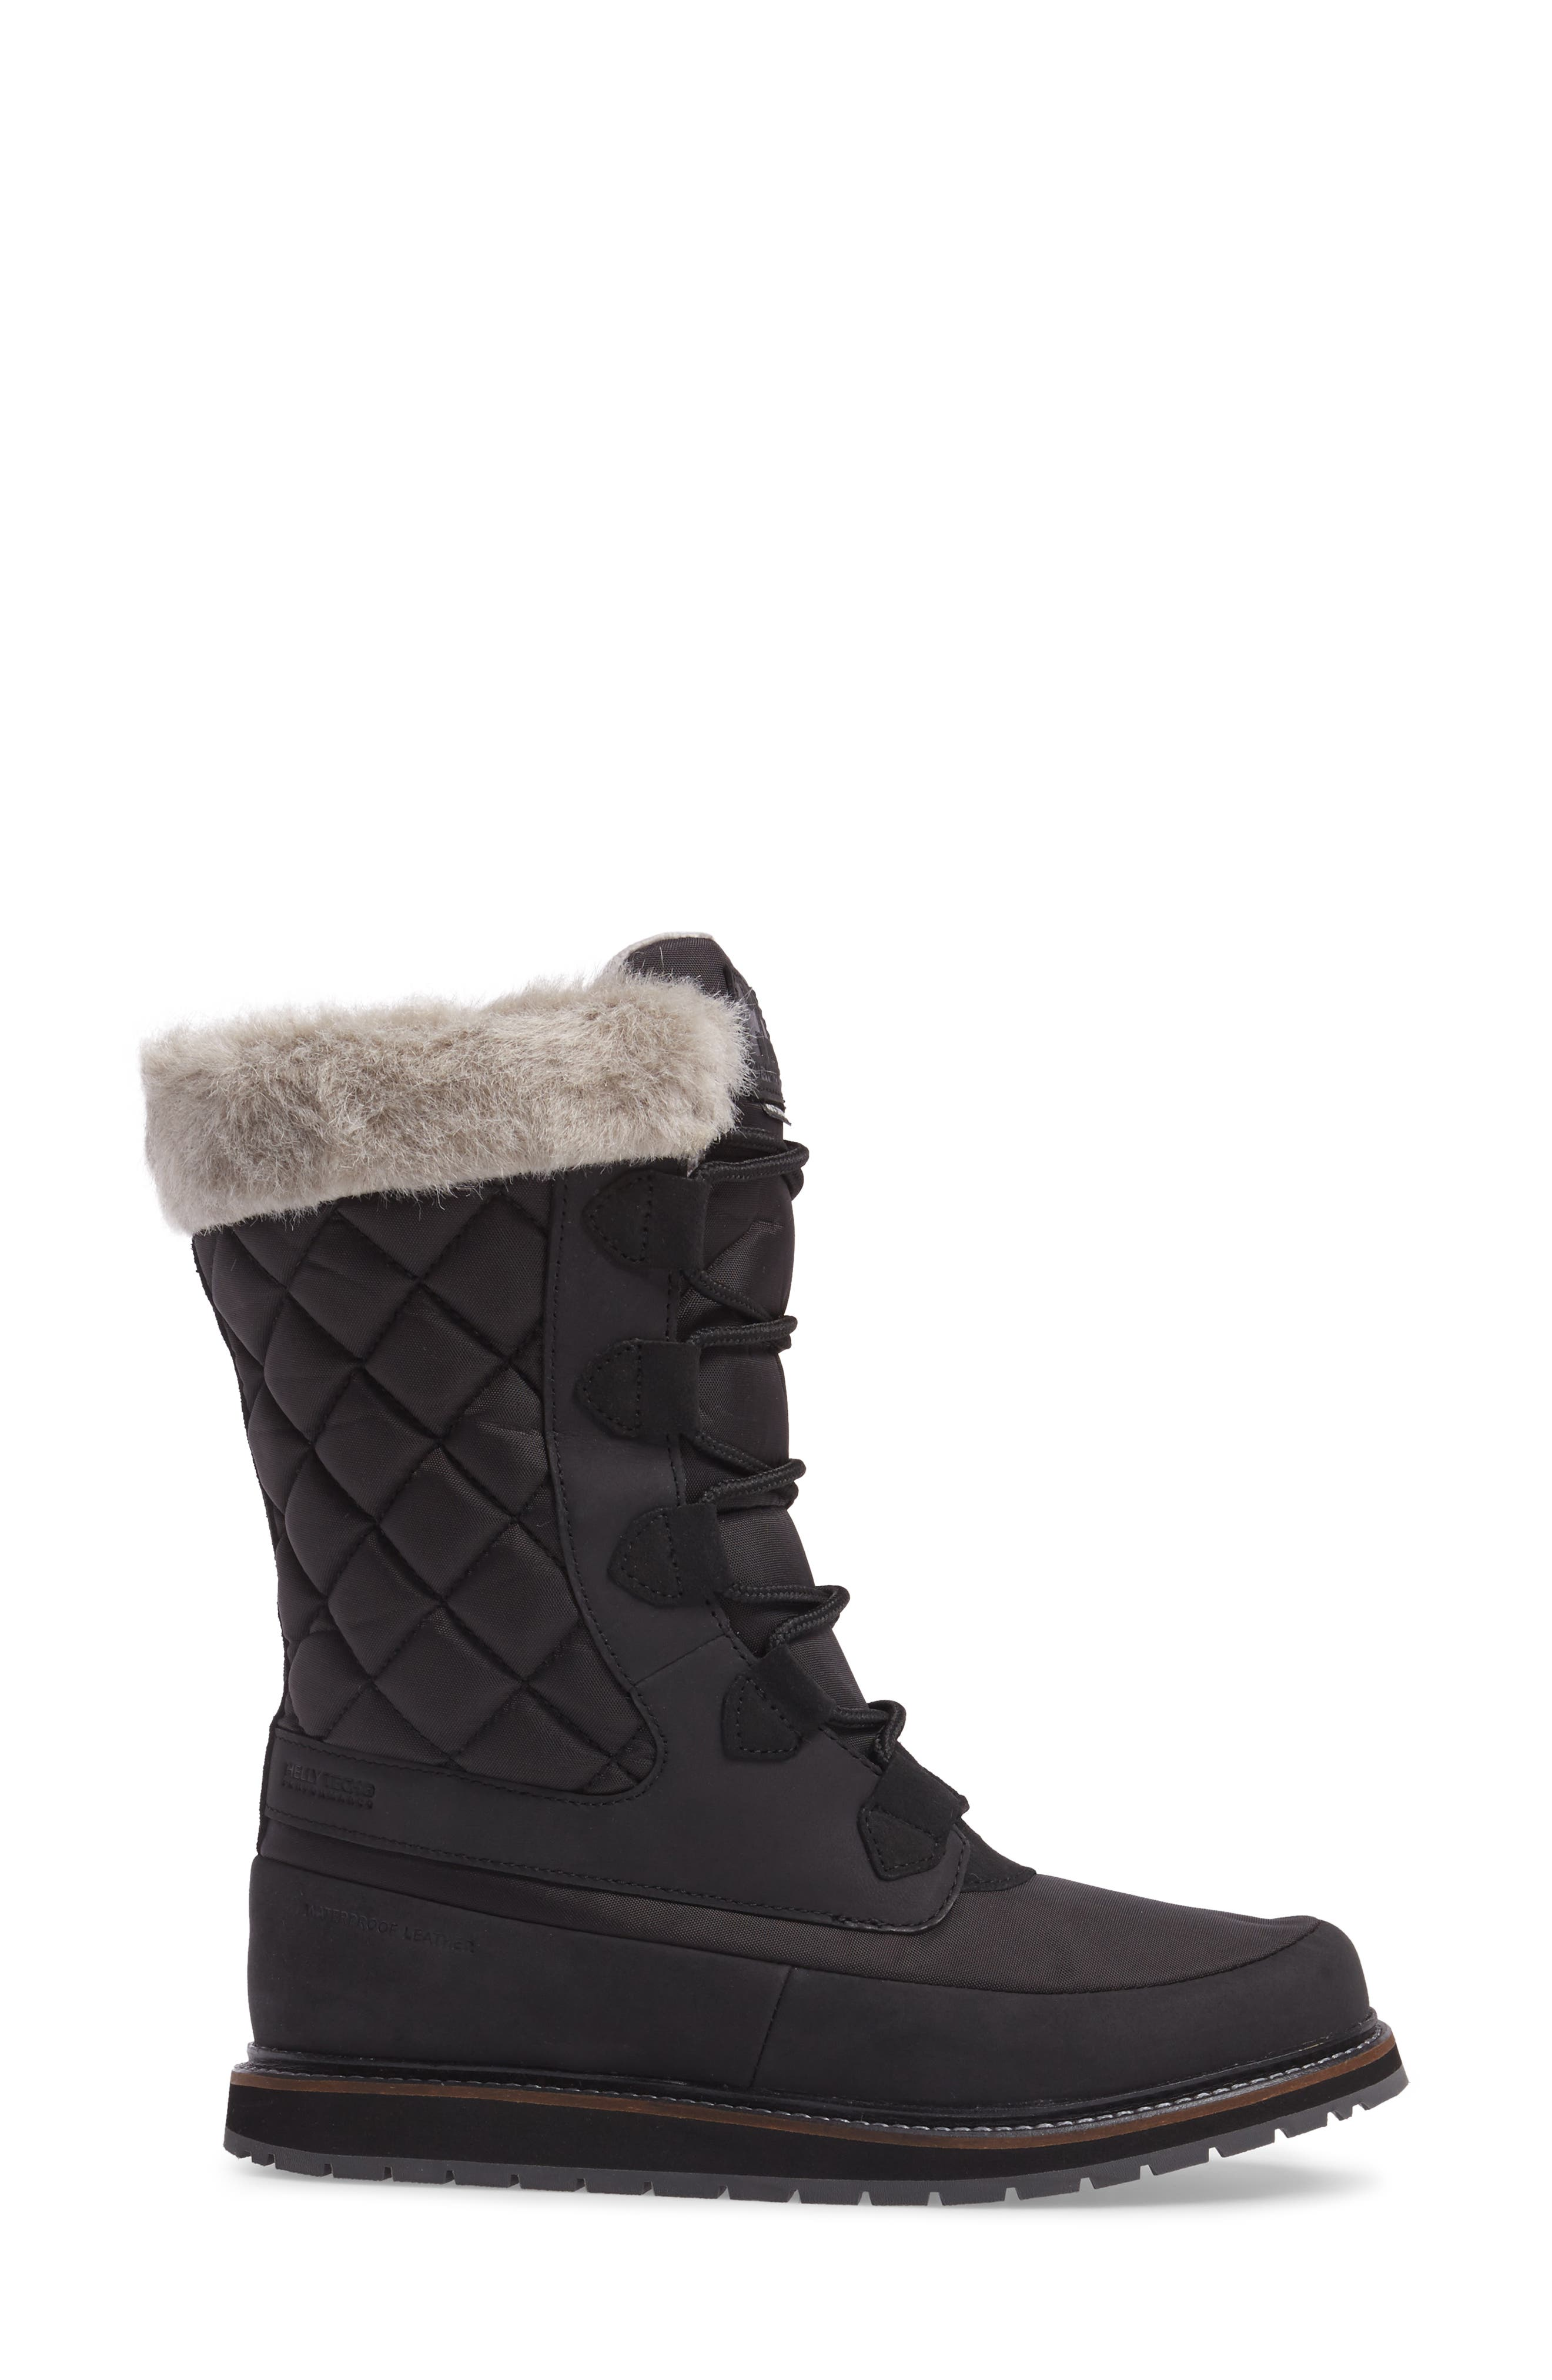 Arosa Waterproof Boot with Faux Fur Trim,                             Alternate thumbnail 3, color,                             001